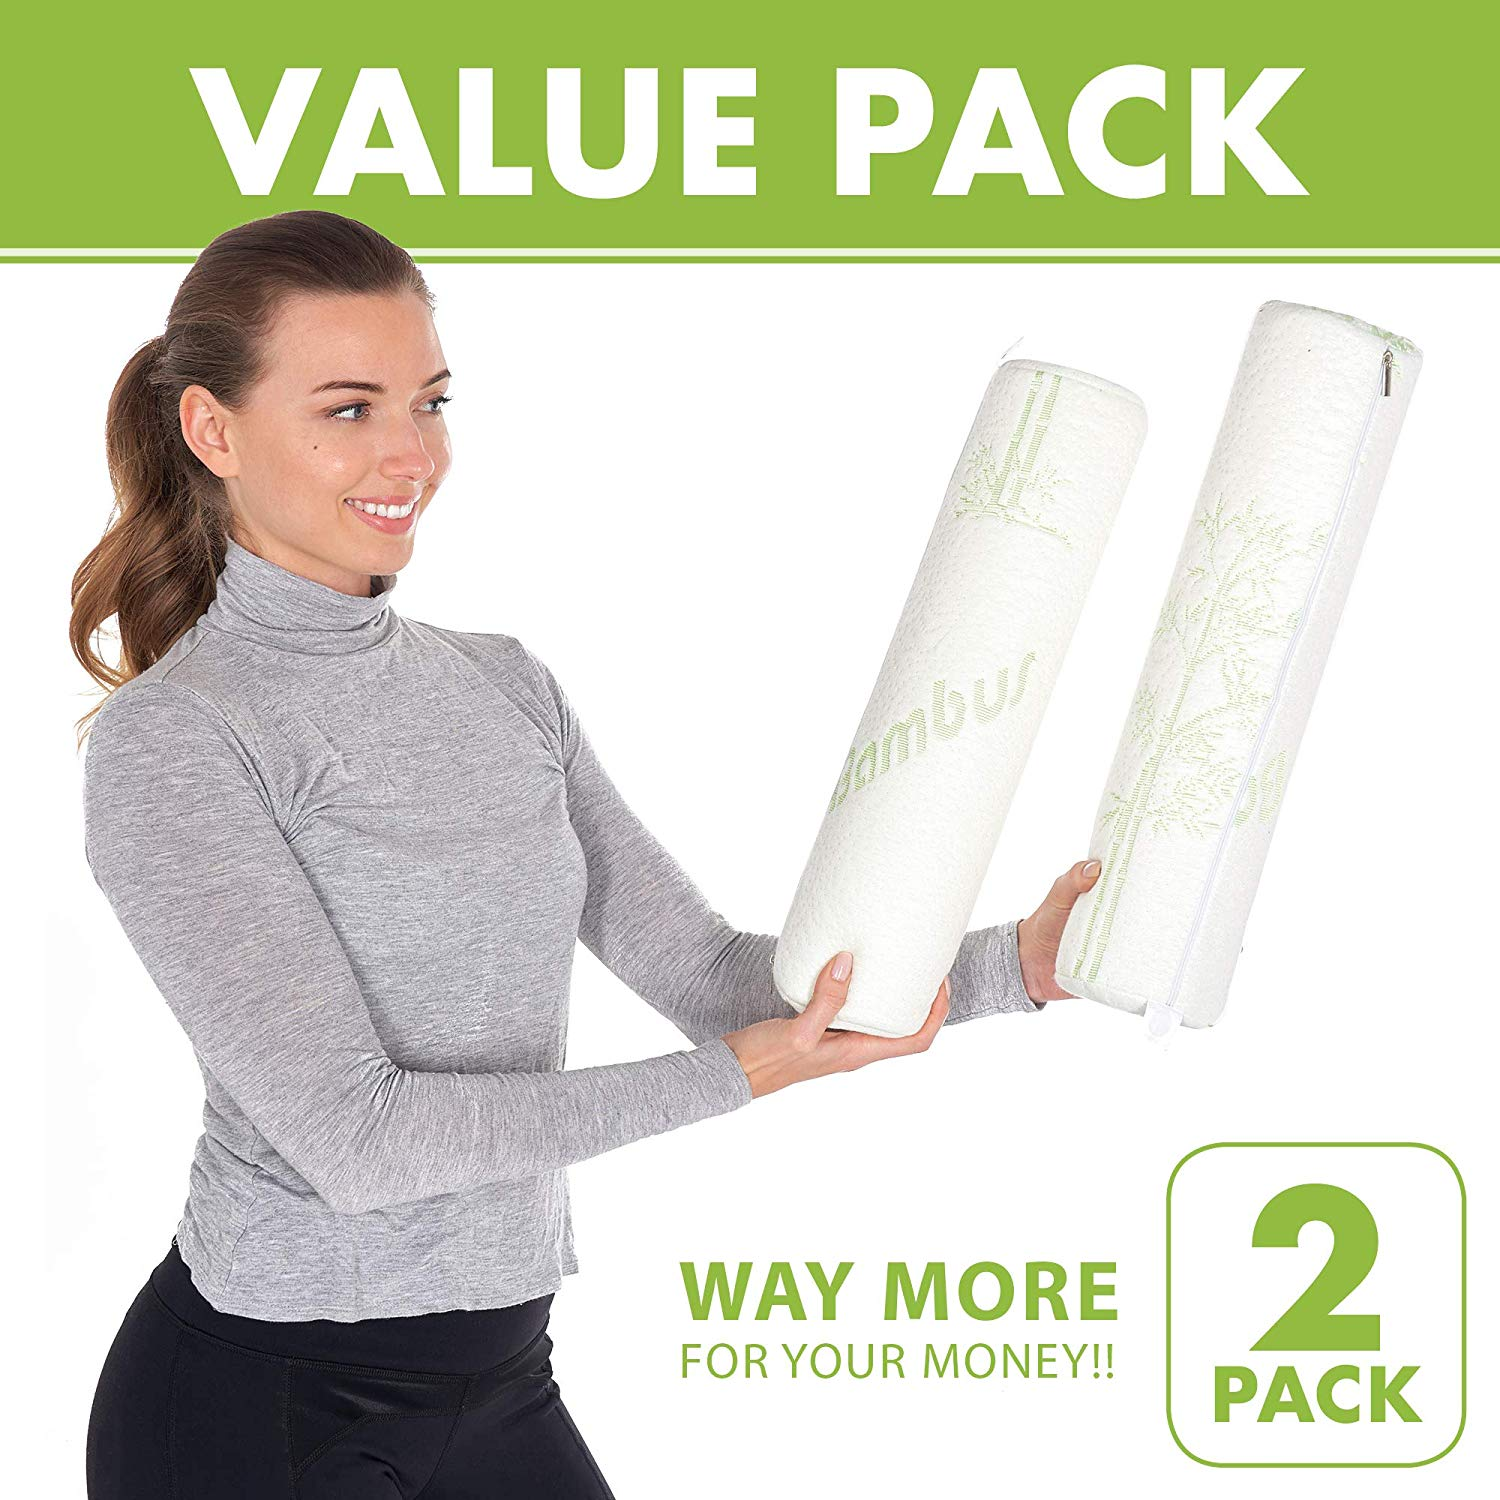 Bamboo Cylinder Neck Roll Cervical Memory Foam Pillow - Spine & Lumbar Support For Better Sleeping - 2 Pack